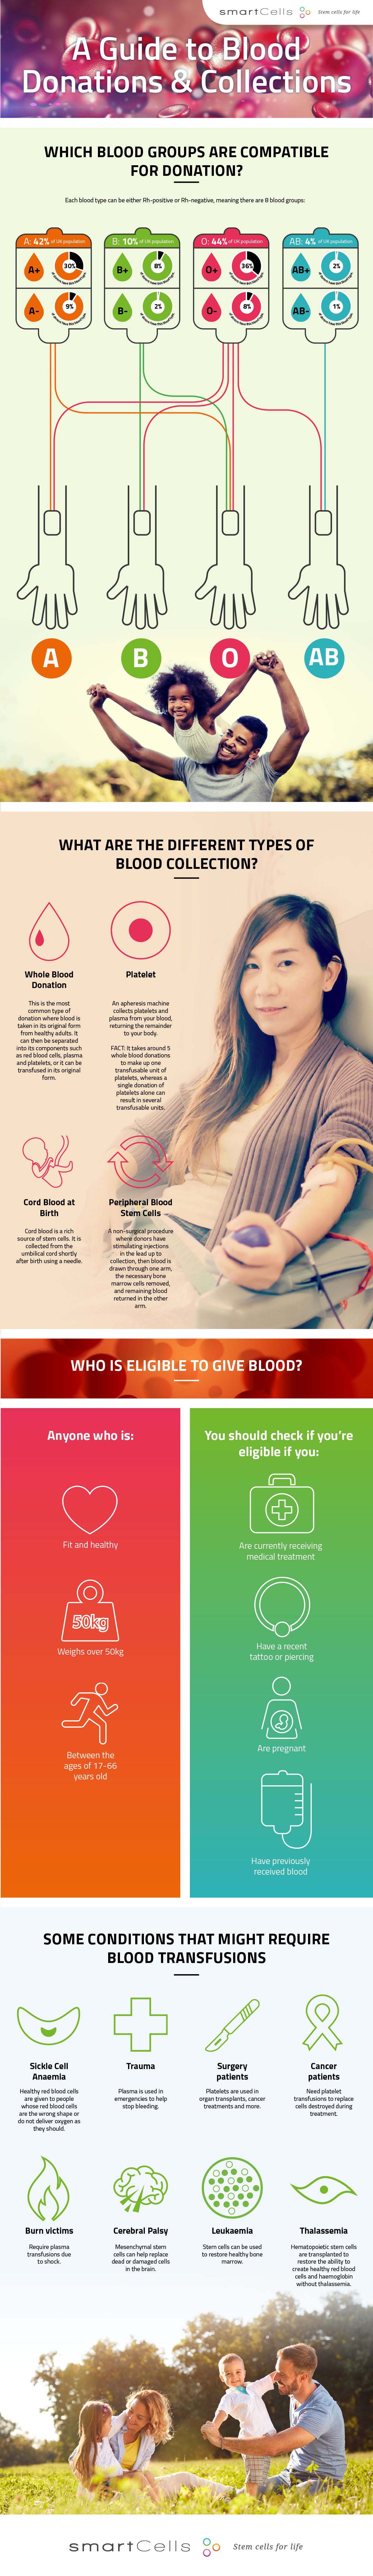 Smart Cells releases Guide to Blood Donations & Collections